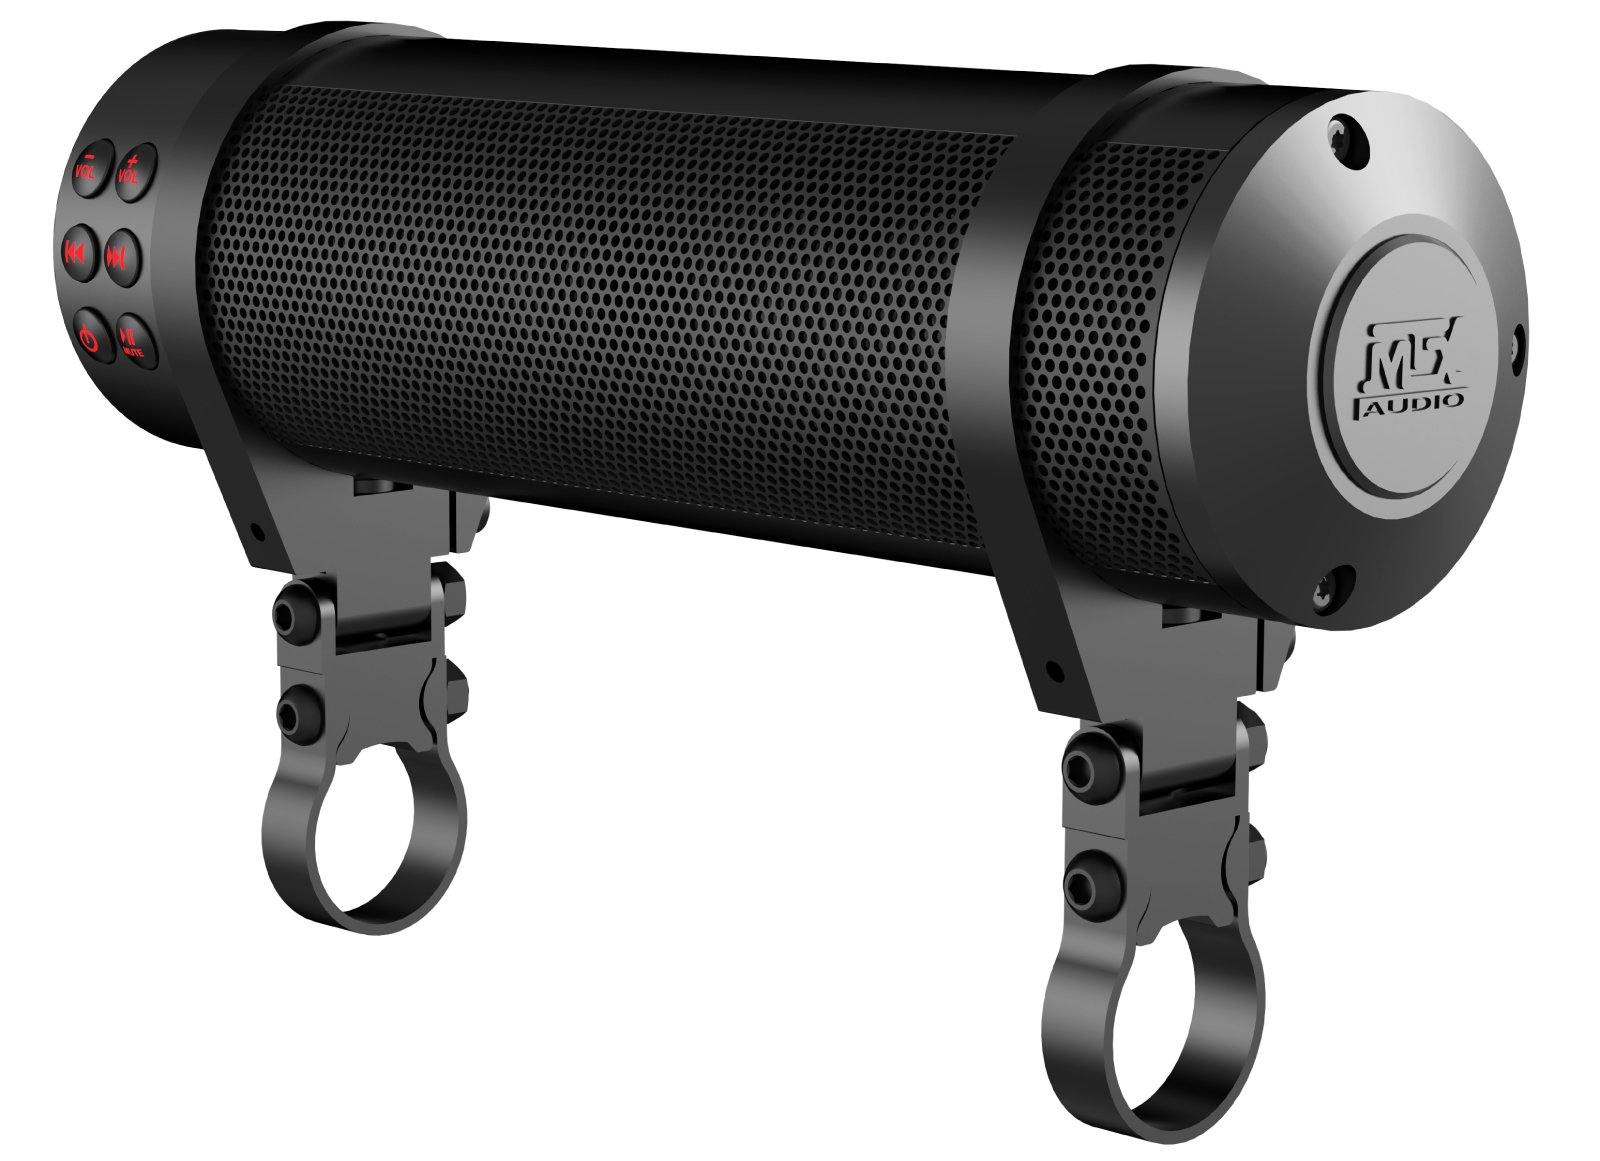 MTX MUDHSB-B Universal 6 Speaker All Weather Handlebar Sound System by MTX (Image #2)